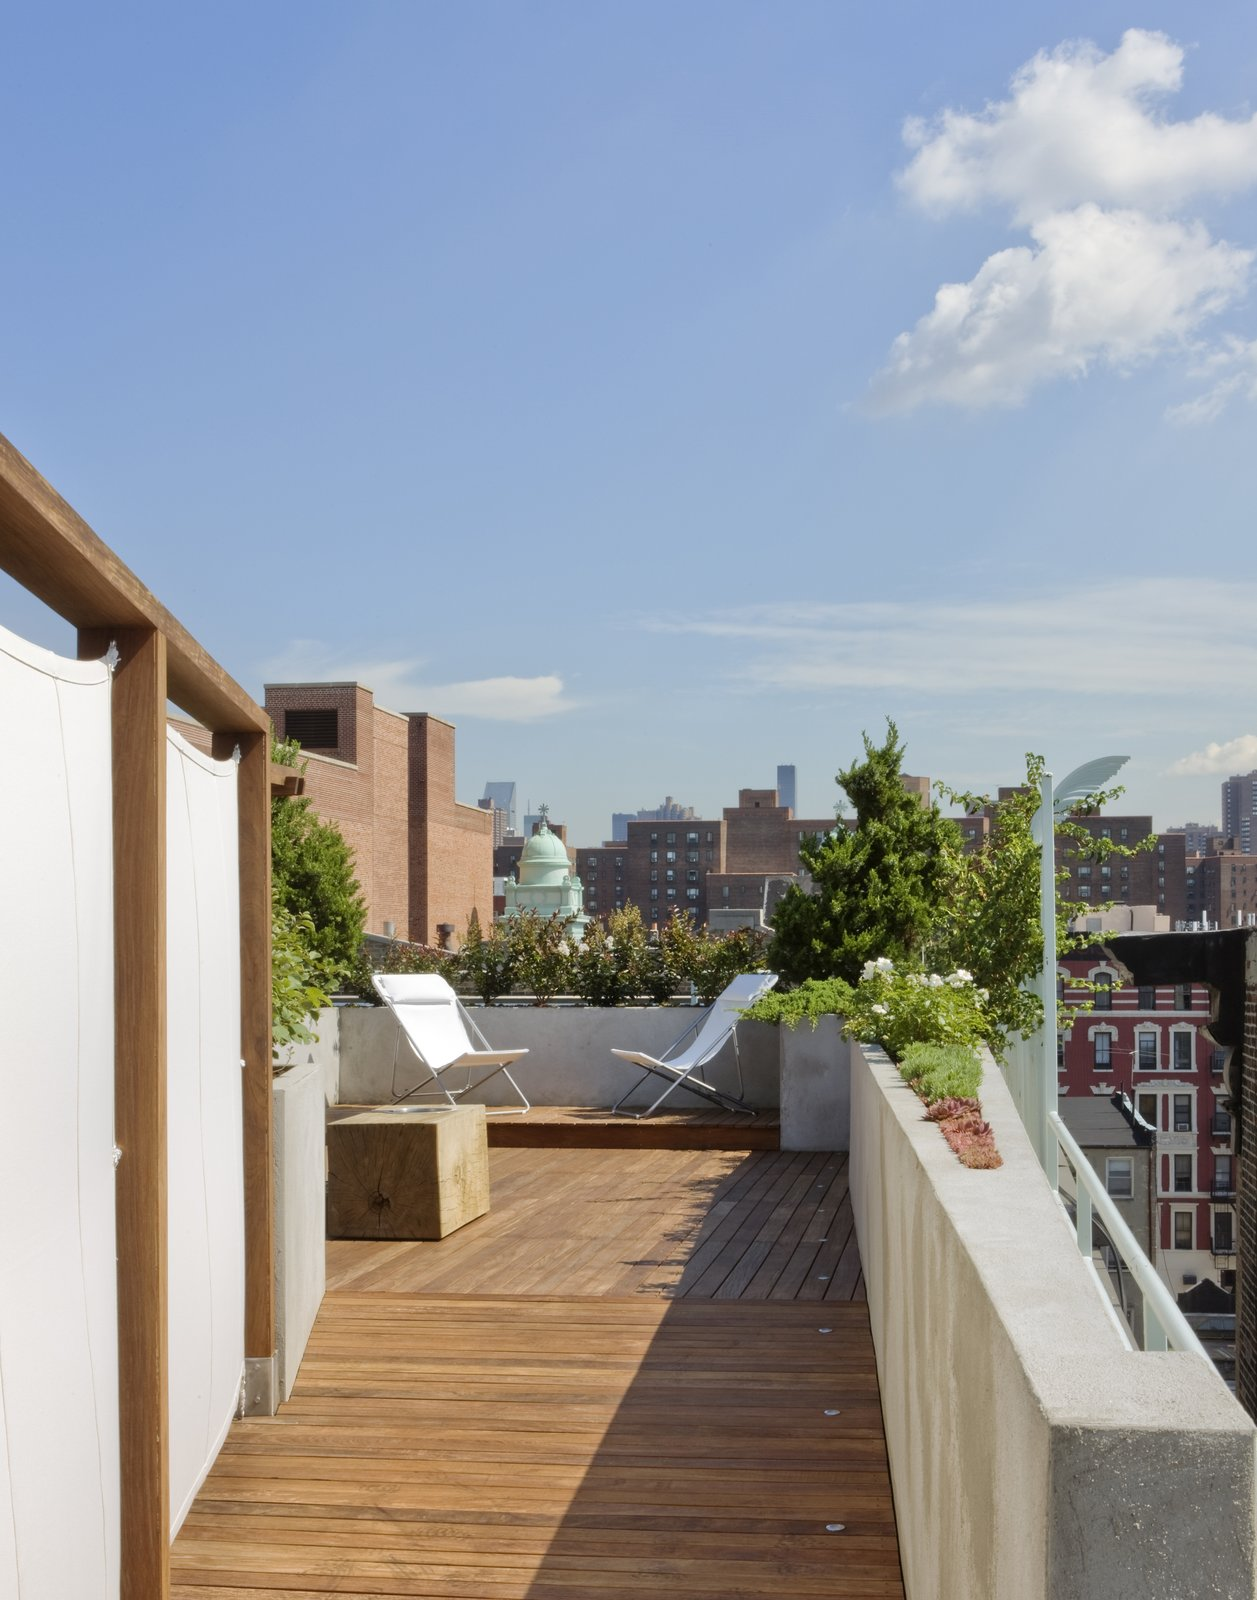 A view from the connecting ramp towards the upper level of the roof deck.   A custom Portland cement stucco planter wall tapers in a wedge shape continuing the line of the building parapet.  Military surplus canvas screens are on the right.  These are removable allowing access to existing service areas on the roof.  East Village Roof Garden by pulltab